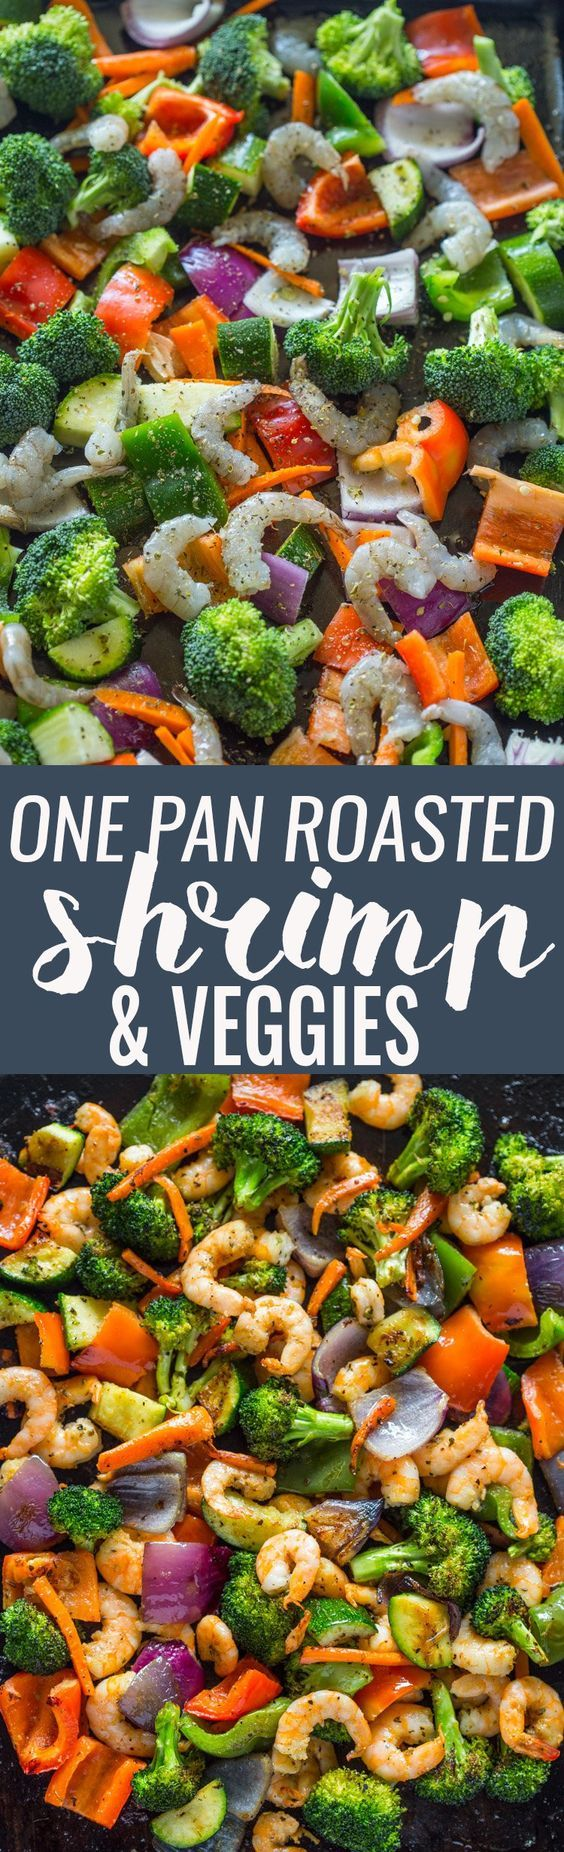 Easy One Pan Roasted Shrimp and Veggies | Gimme Delicious